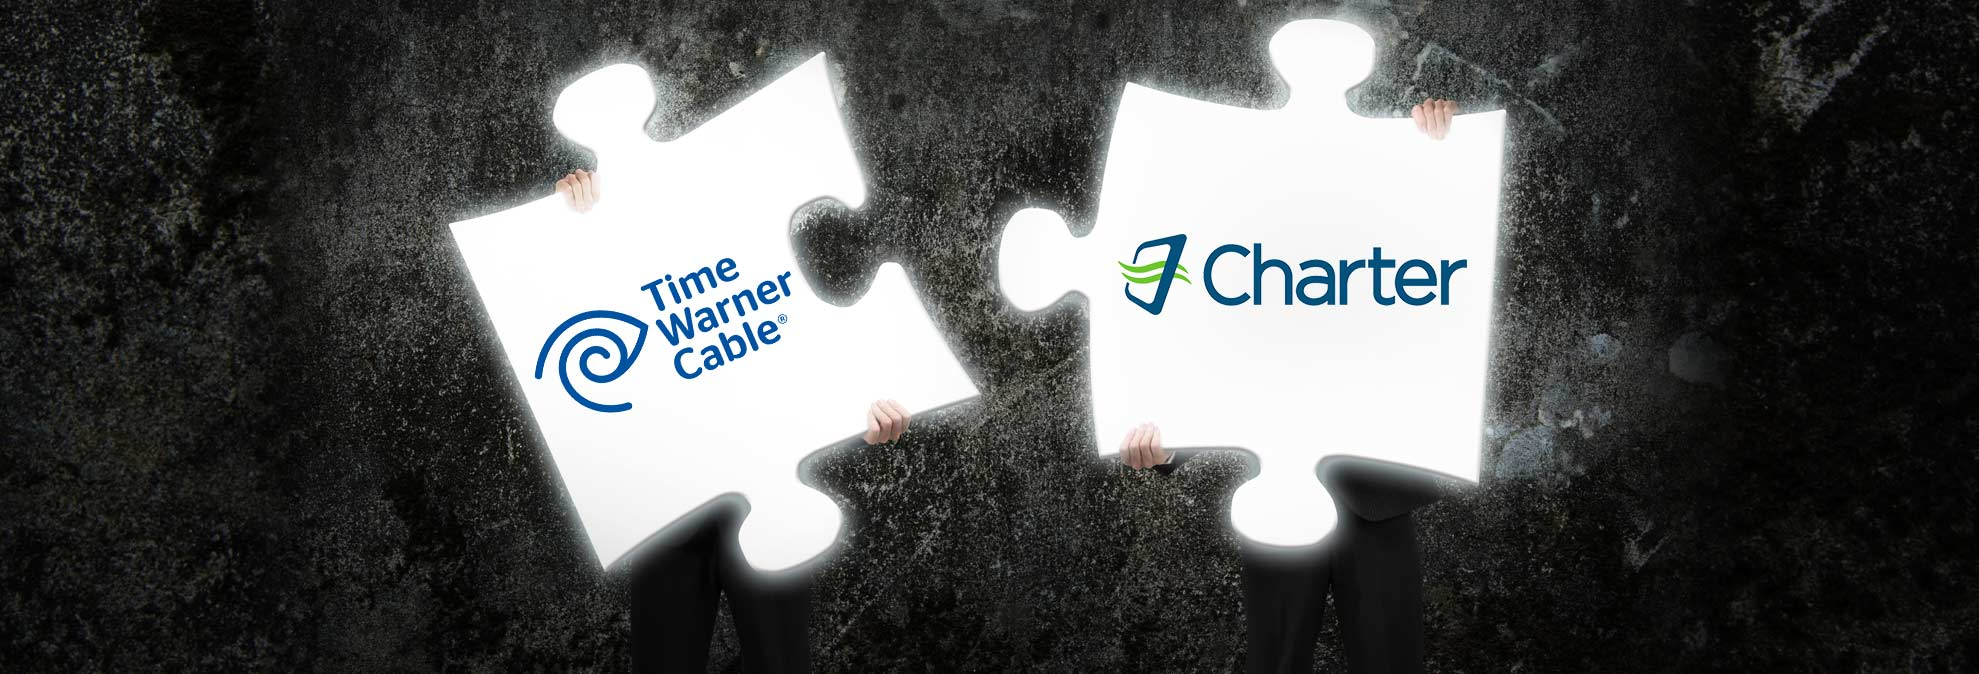 Fcc documents show why charter time warner merger might be bad for fcc documents show why charter time warner merger might be bad for consumers consumer reports solutioingenieria Choice Image